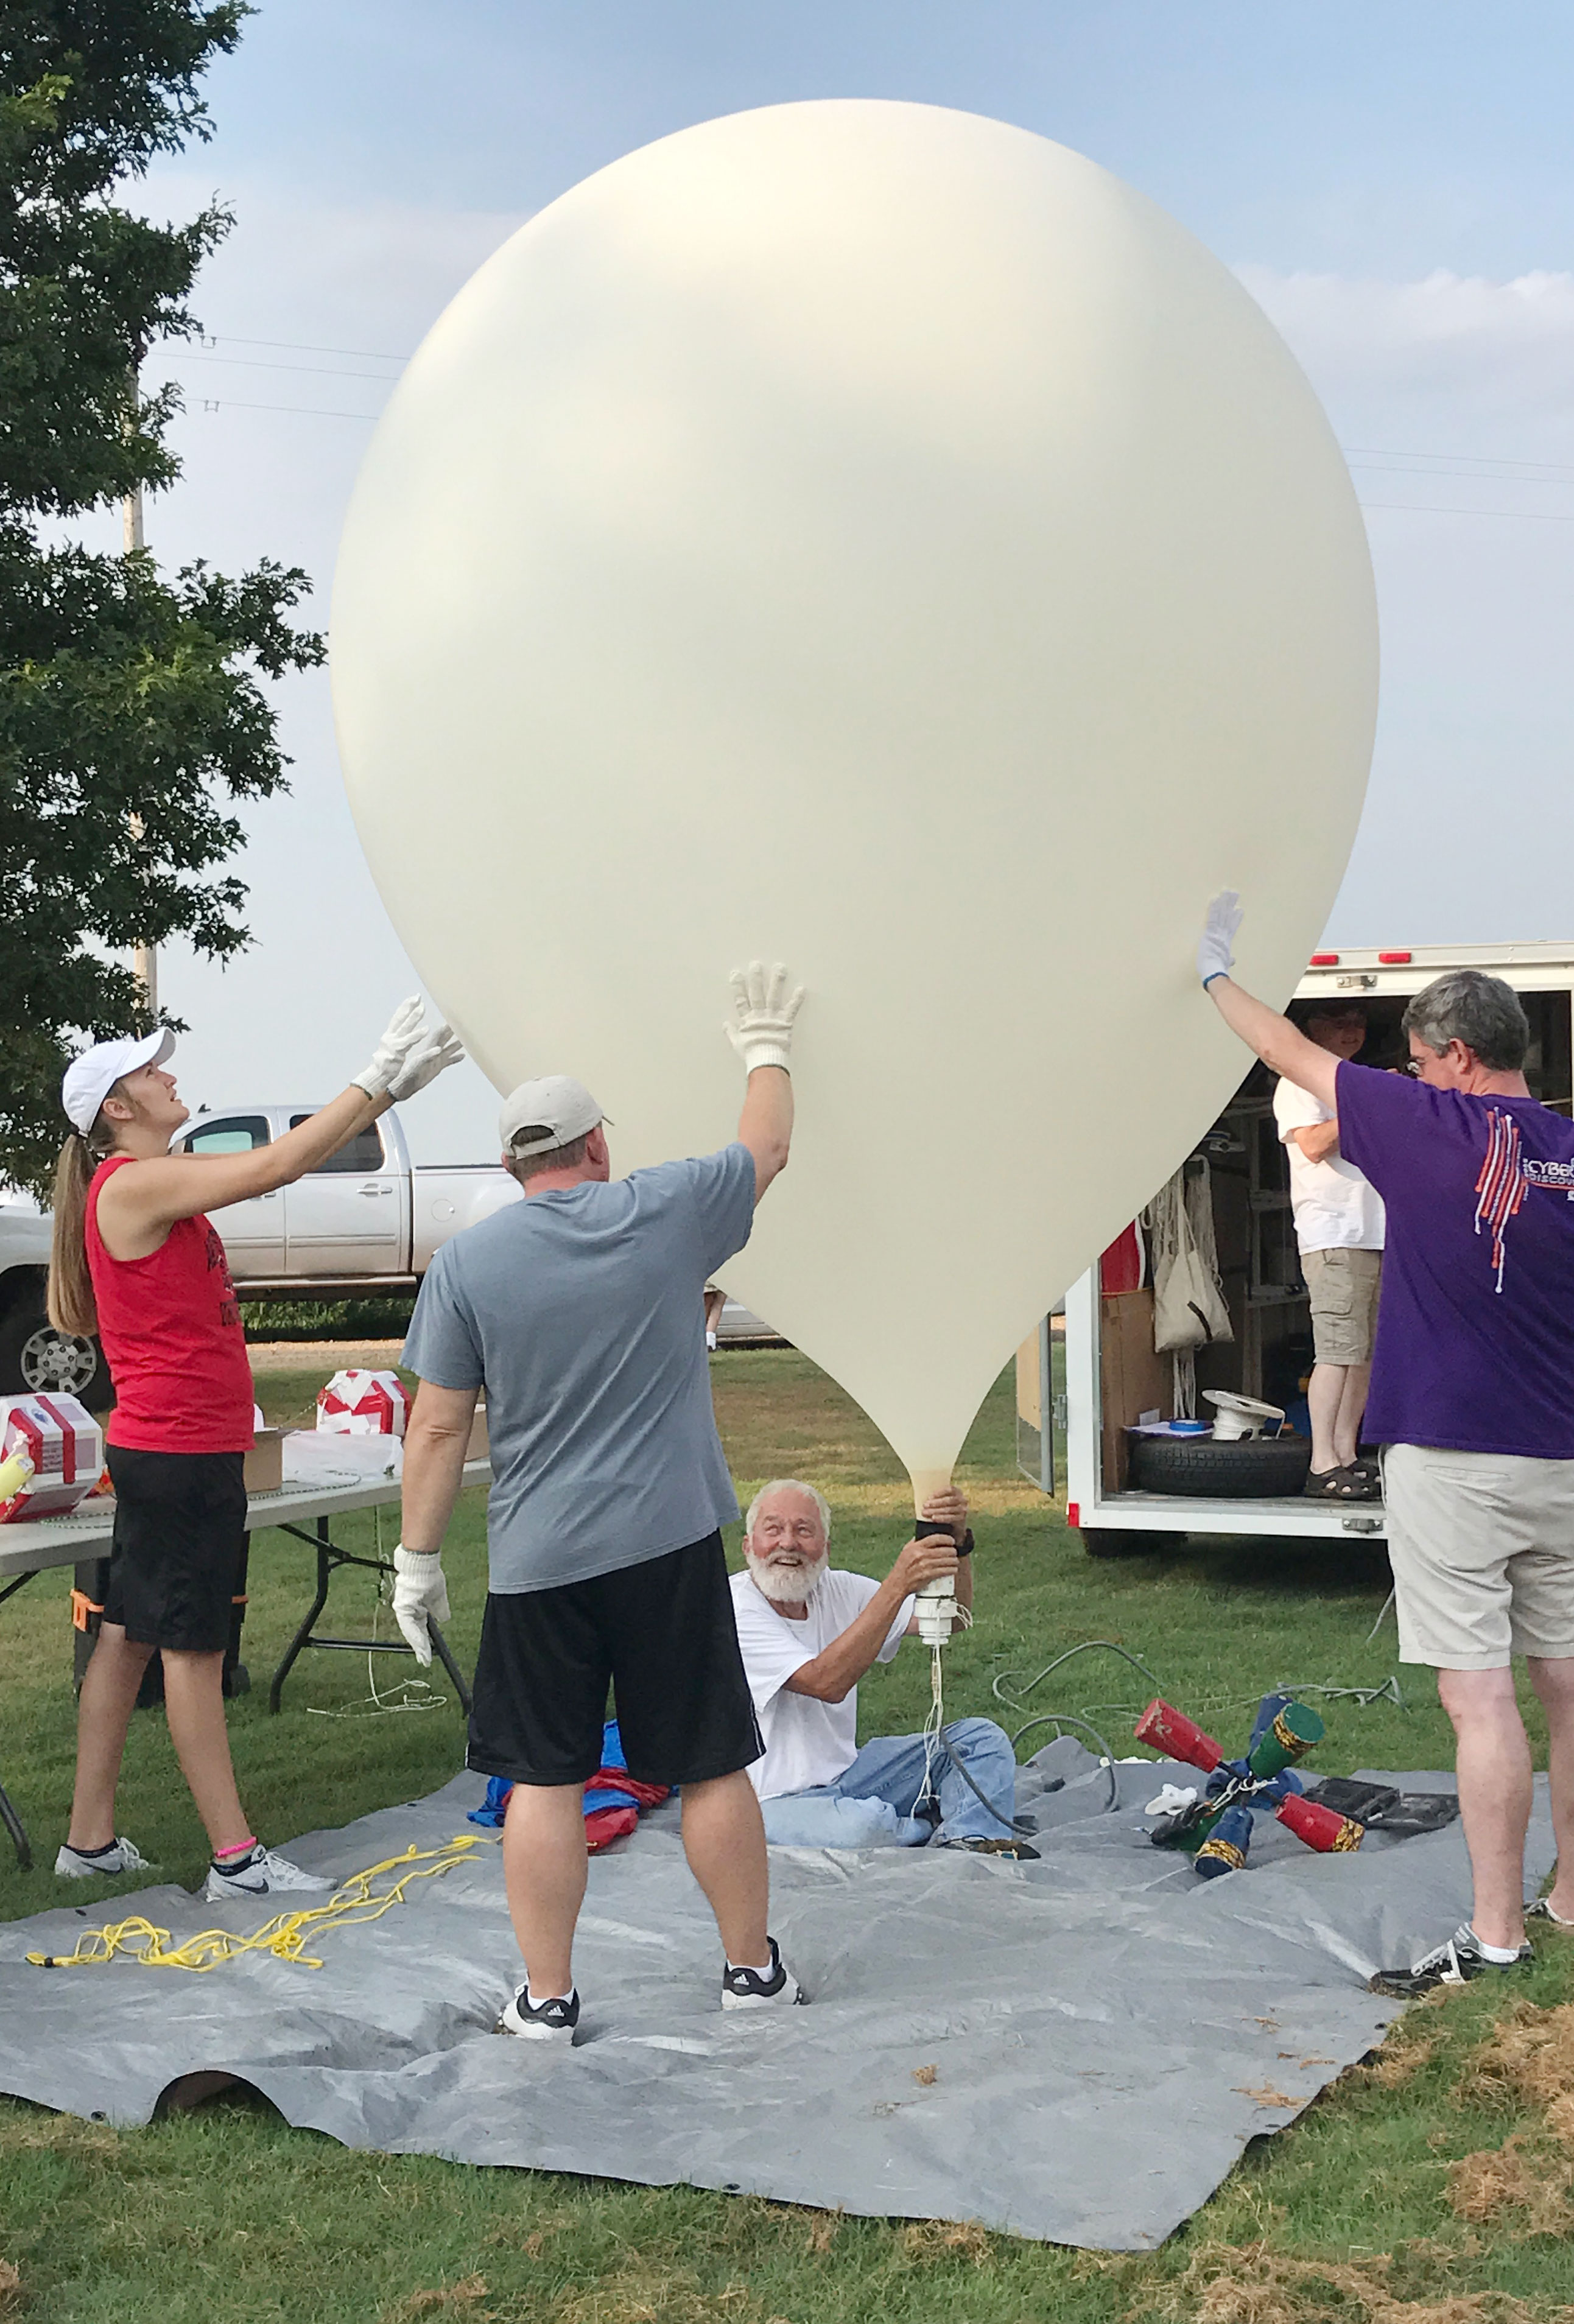 Eclipse-Balloon-Launch-For-Web